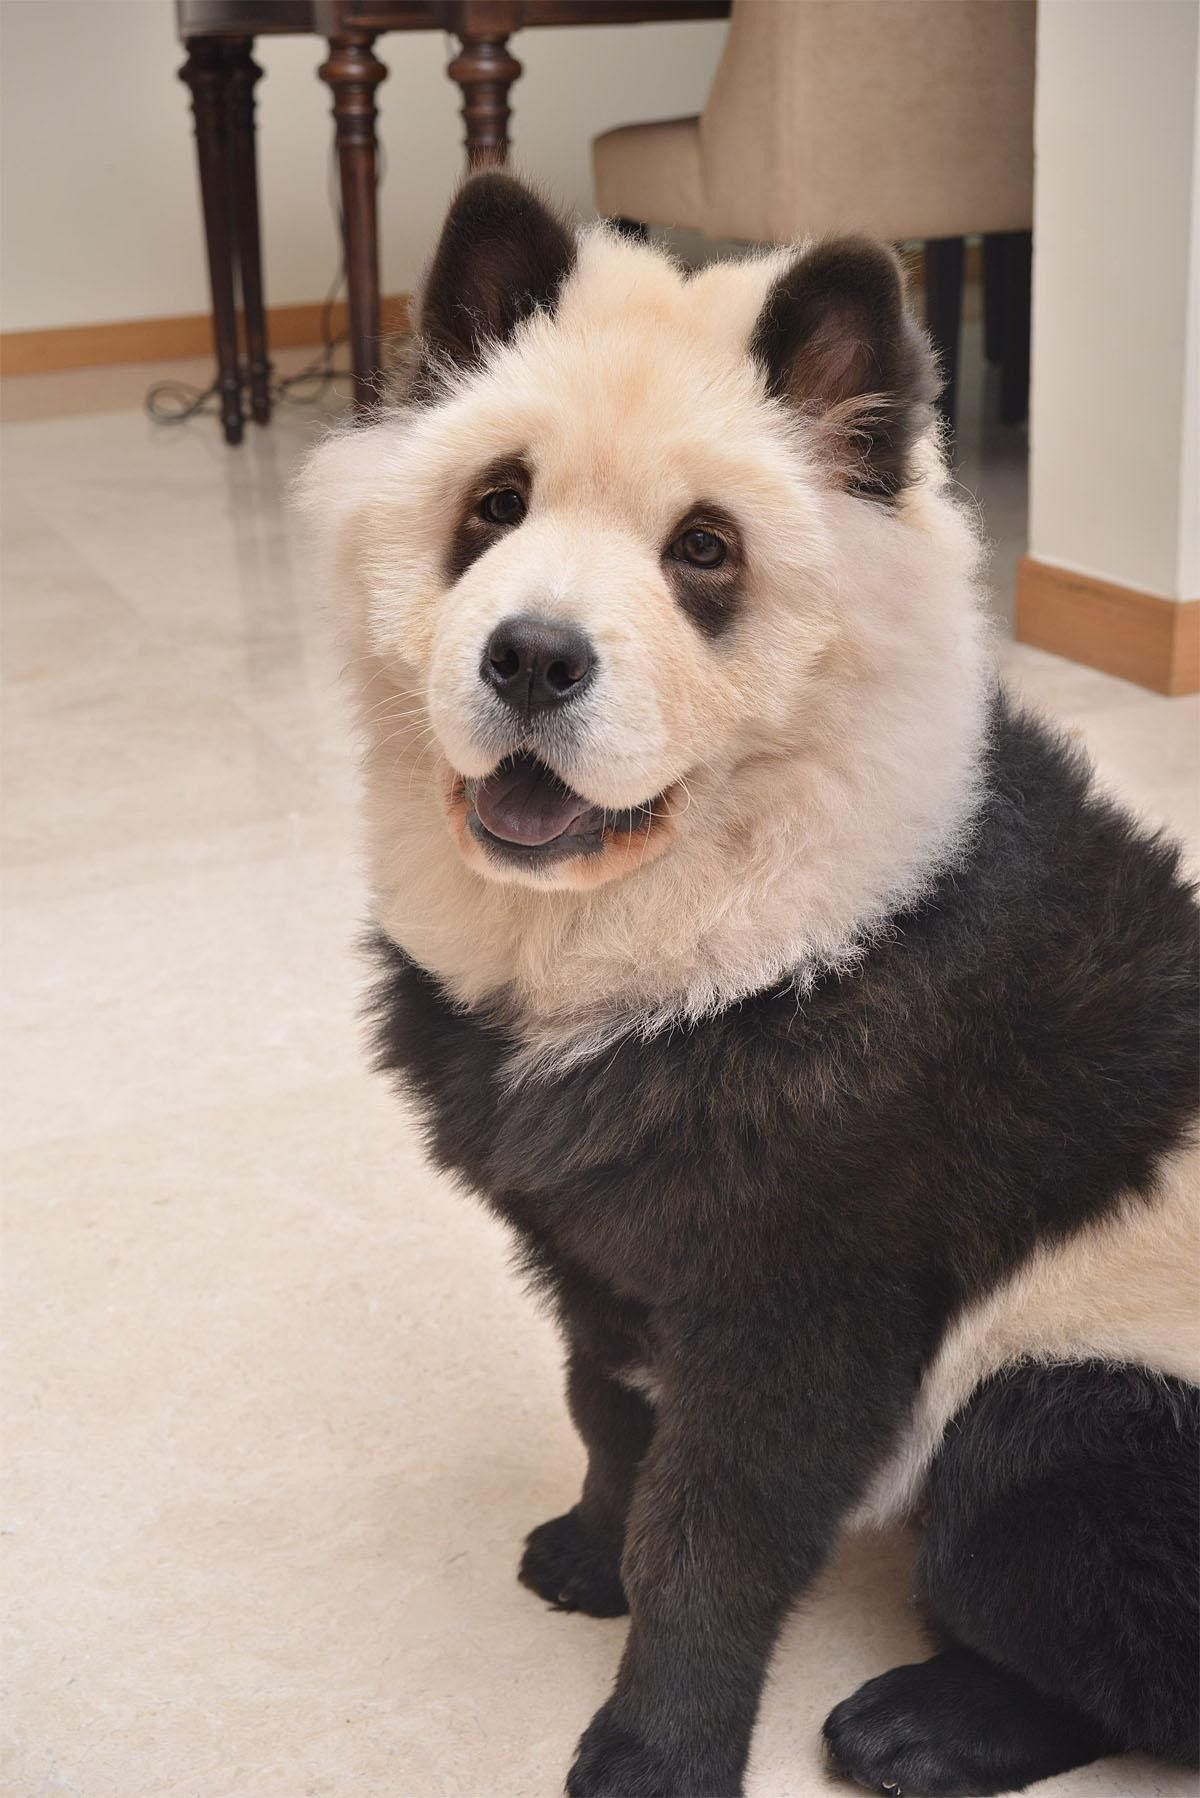 Photos Chow Chow Pups Bear Uncanny Resemblance To Panda Breed